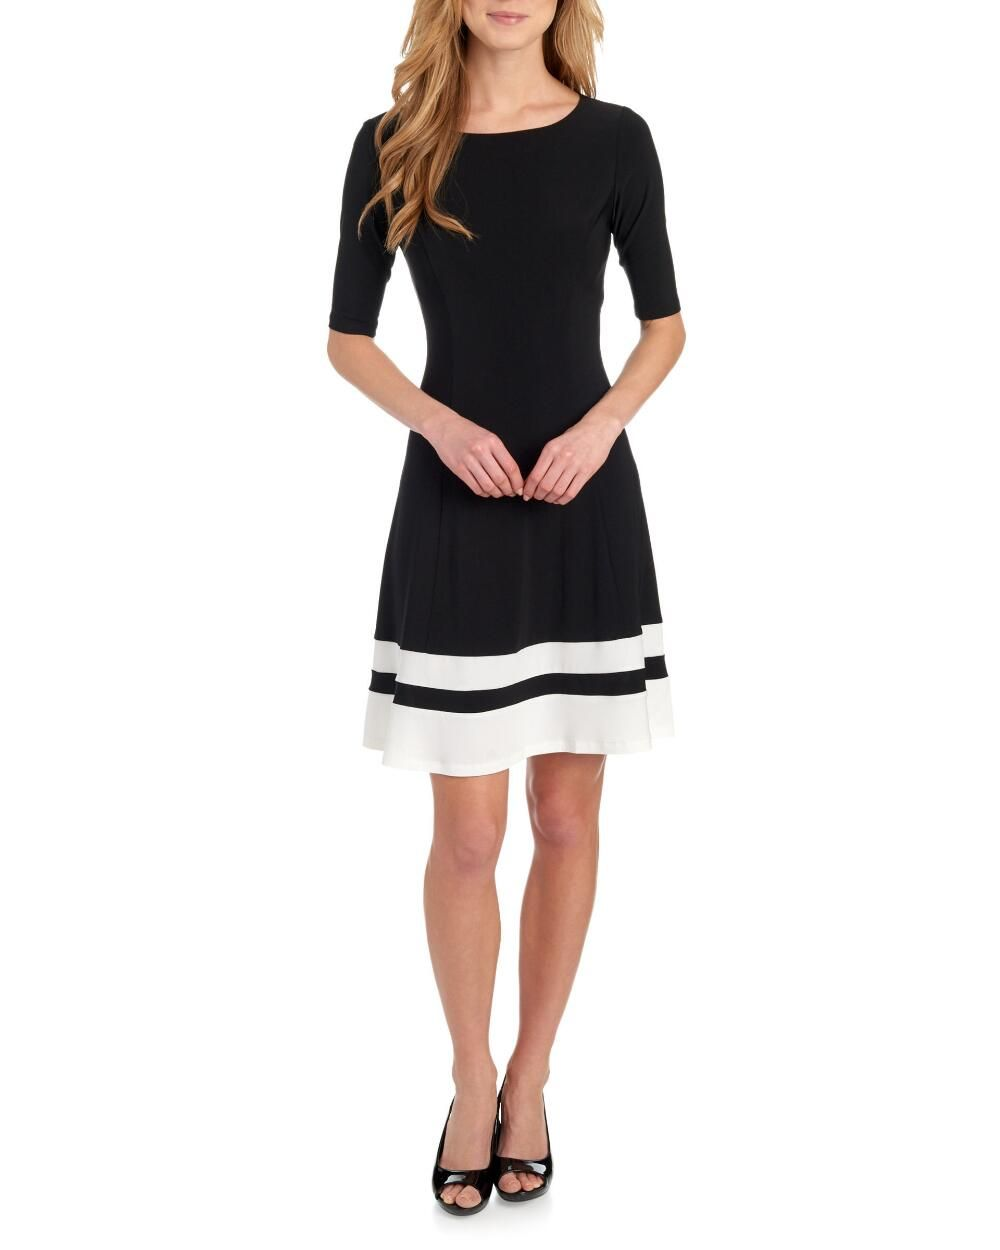 a15afc61396 Darrow Elbow Sleeve Fit and Flare Dress-Dresses-Clothing-Women